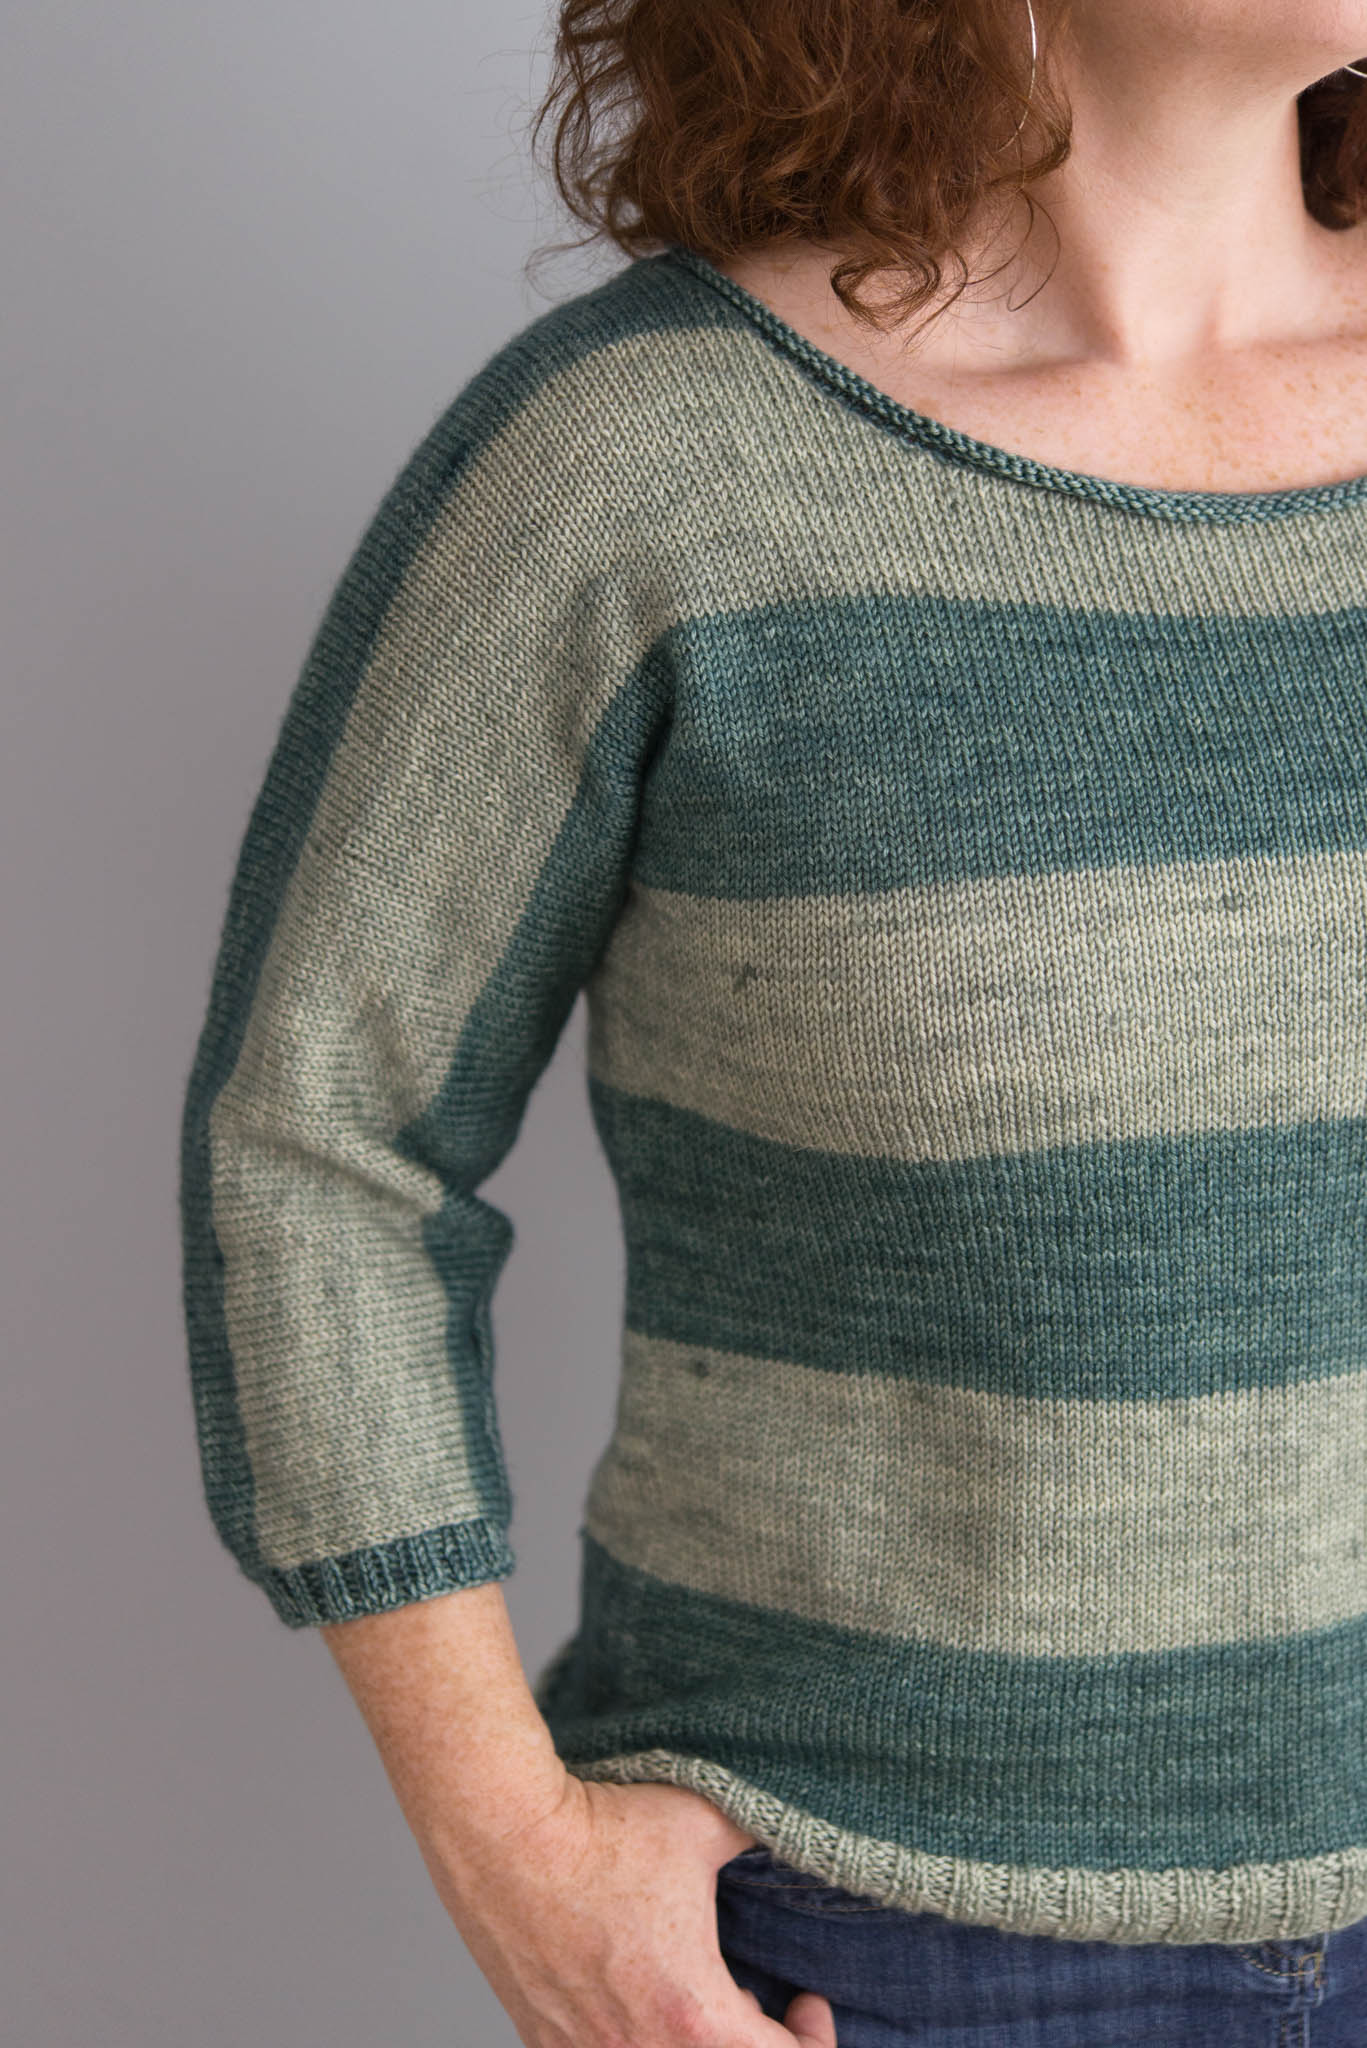 589becd23 Three tips for fearless first sweaters - Amy Herzog Designs